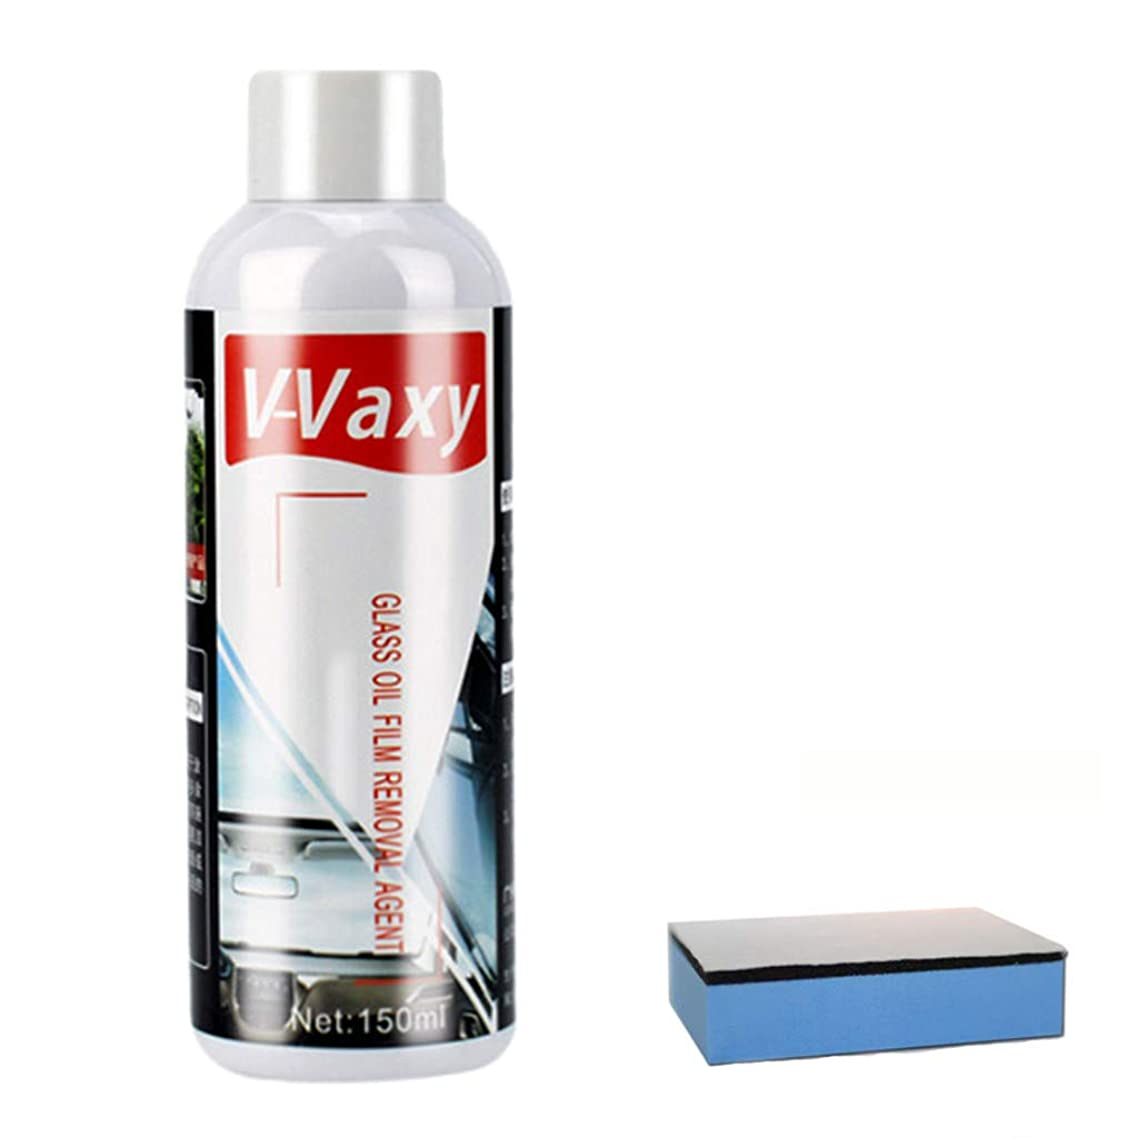 Glass to Get a Crystal Streakless Shine,Hybrid Wax Sealant - Most Advanced Top Coat Polish and Sealer on the Market - Infused with Liquid Carnauba for a Deep Hydrophobic Shine on All Types of Surfaces